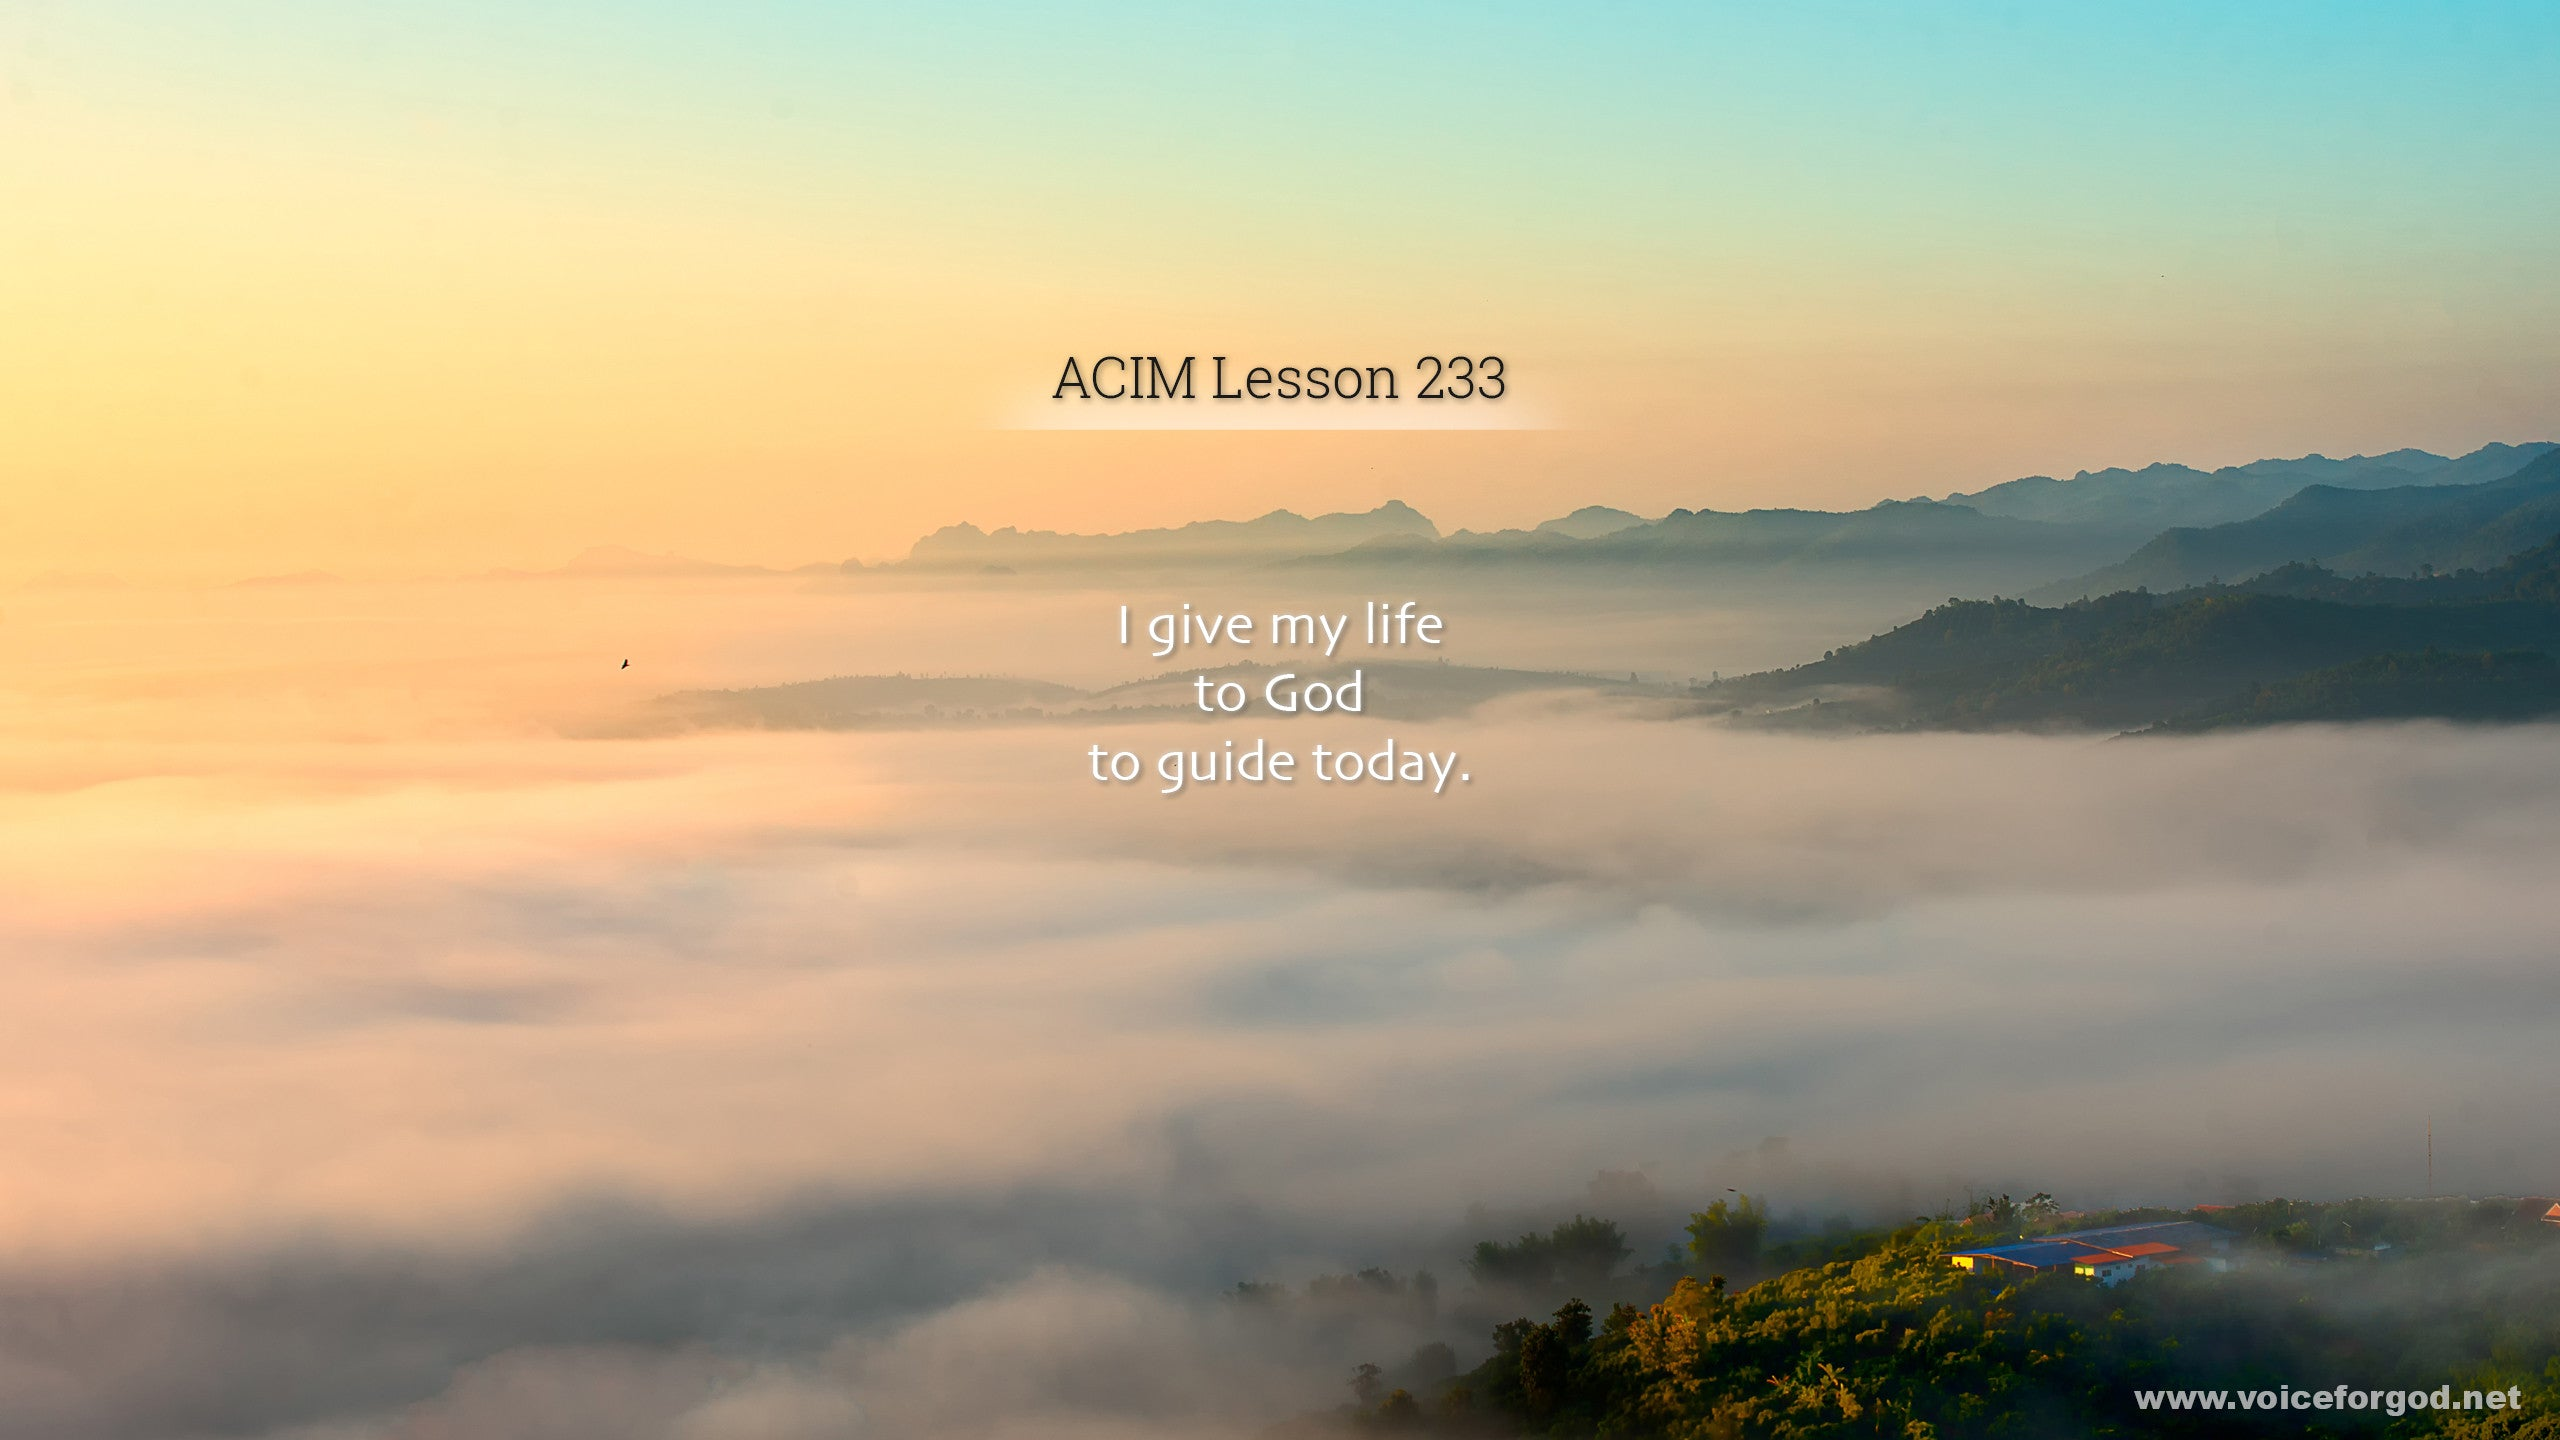 ACIM Lesson 233 - A Course in Miracles Workbook Lesson 233